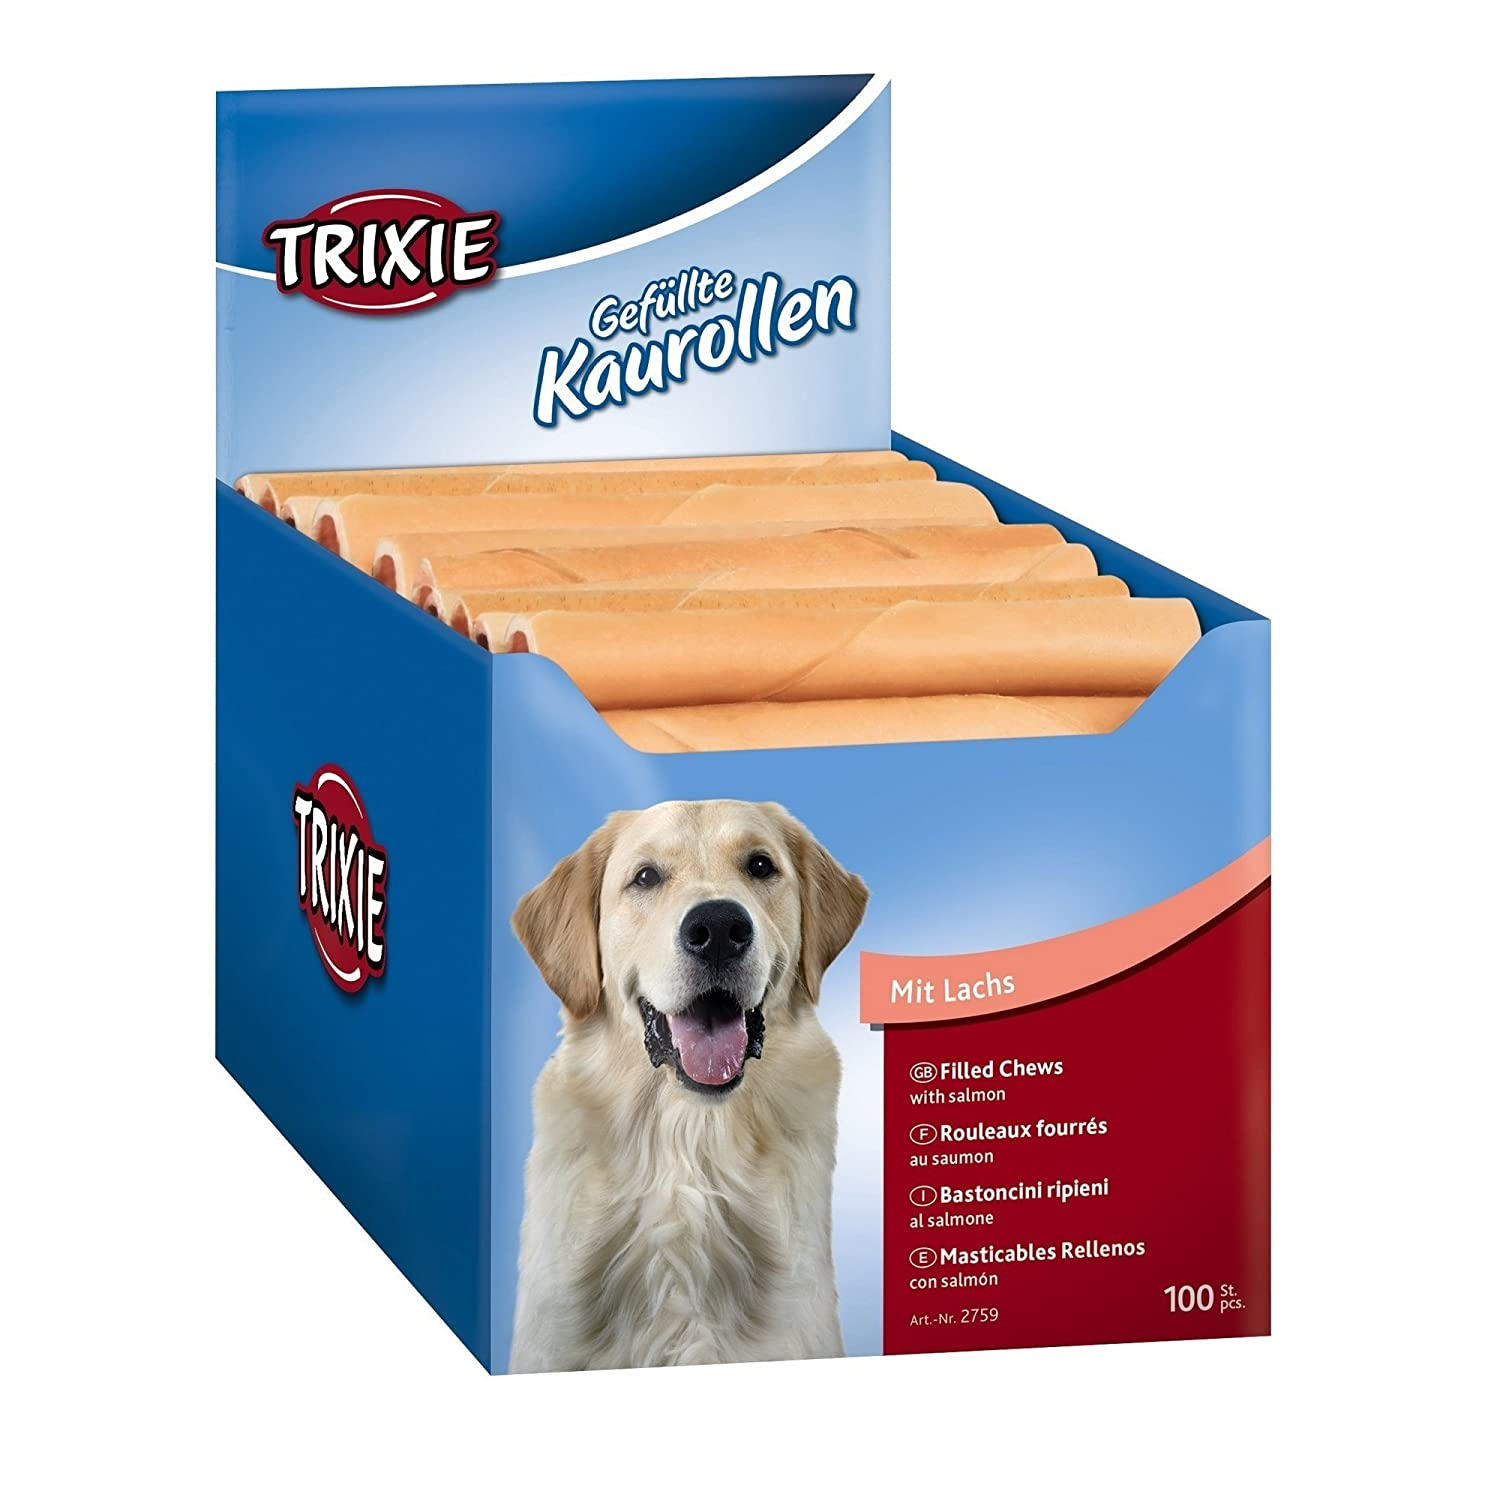 22 g, Pack of 100 Trixie Chewing Rolls Filled with Salmon for Dog, 22 g, Pack of 100